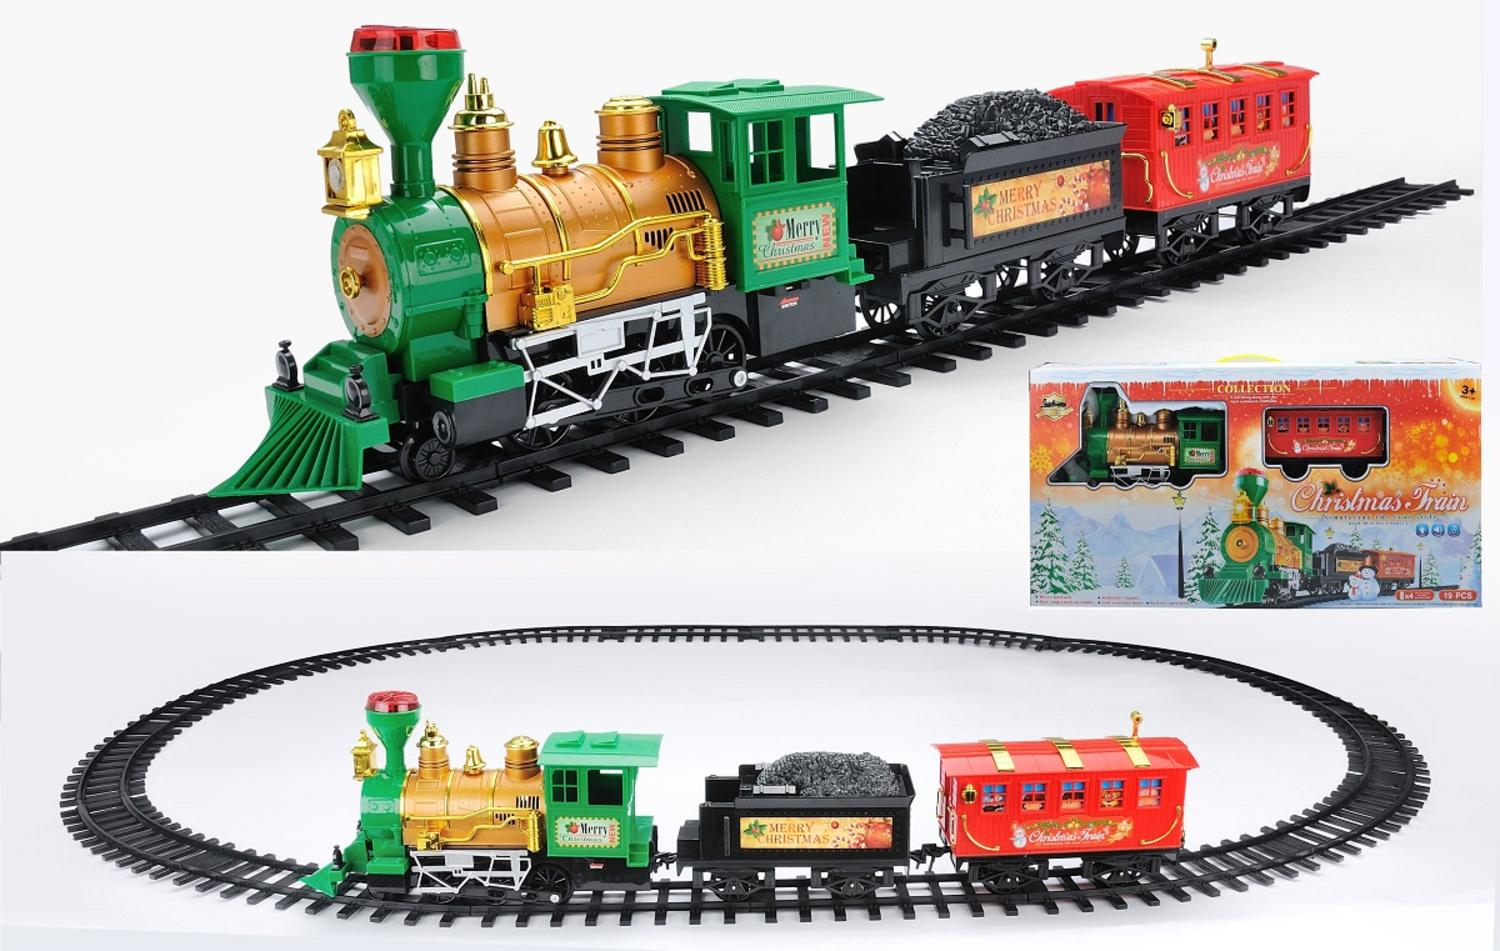 19-Piece Battery Operated Lighted & Animated Christmas Express Train Set with Sound by Northlight